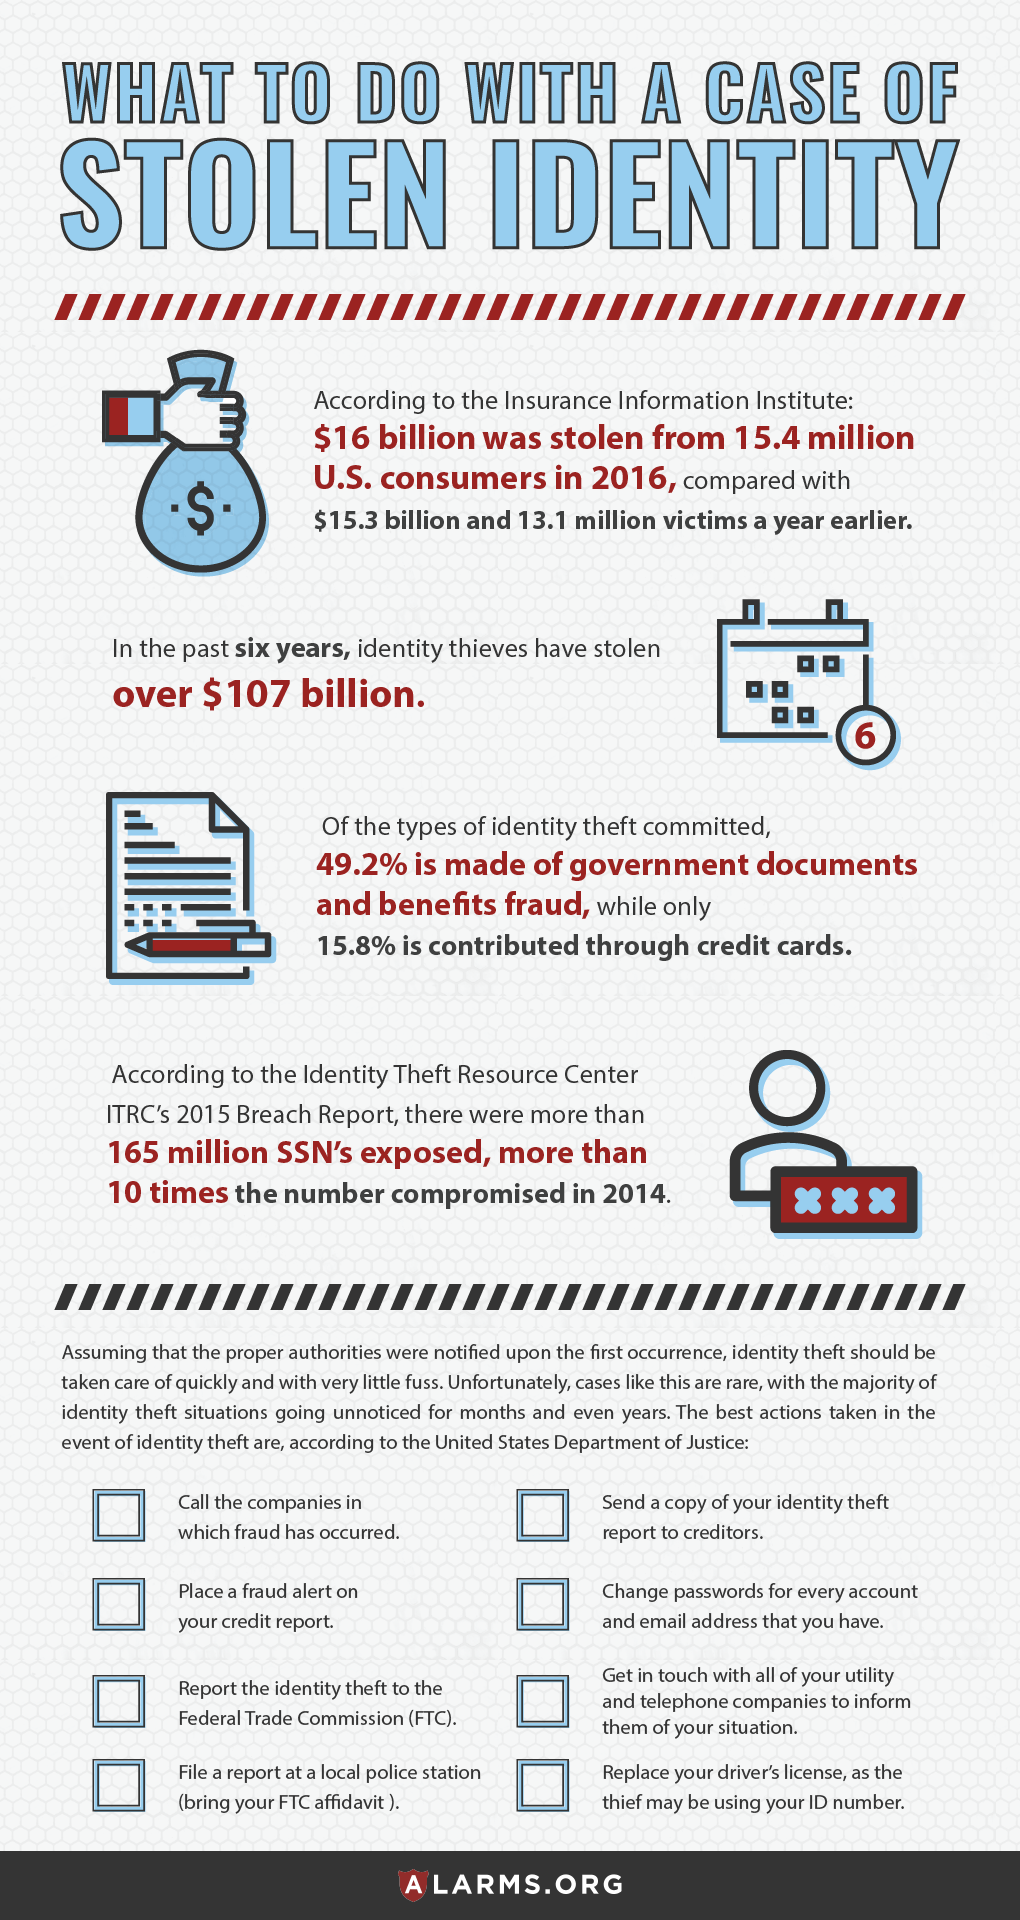 What to Do With Stolen Identity Infographic